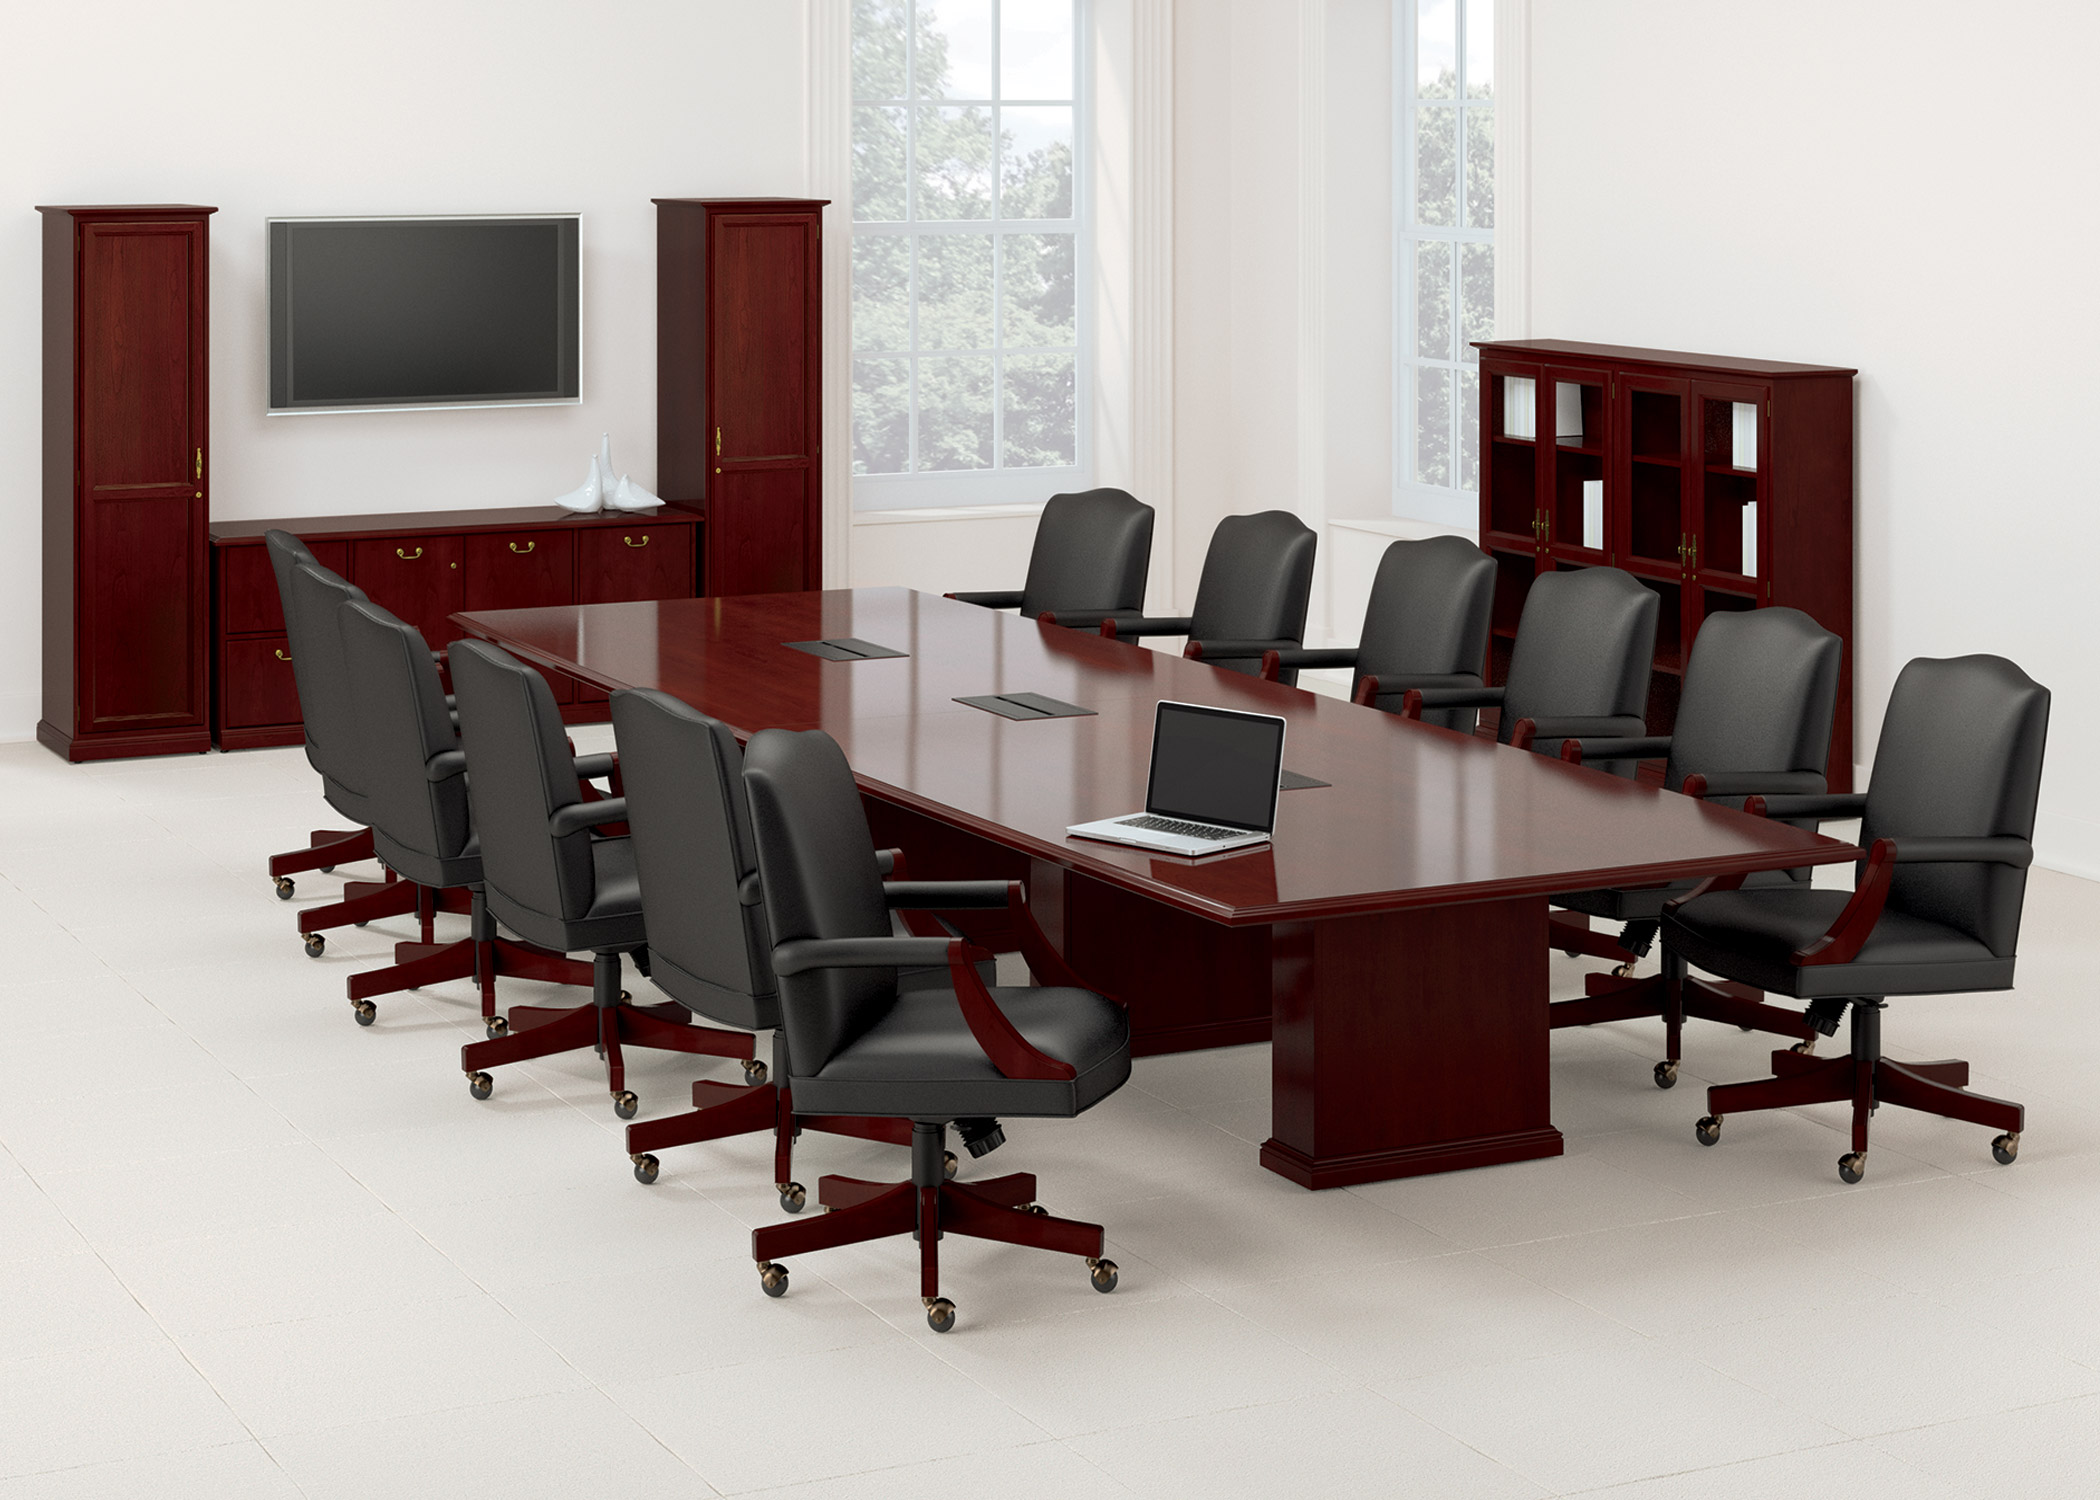 Conference Room Table Resources U0026 Downloads Embassy Suites